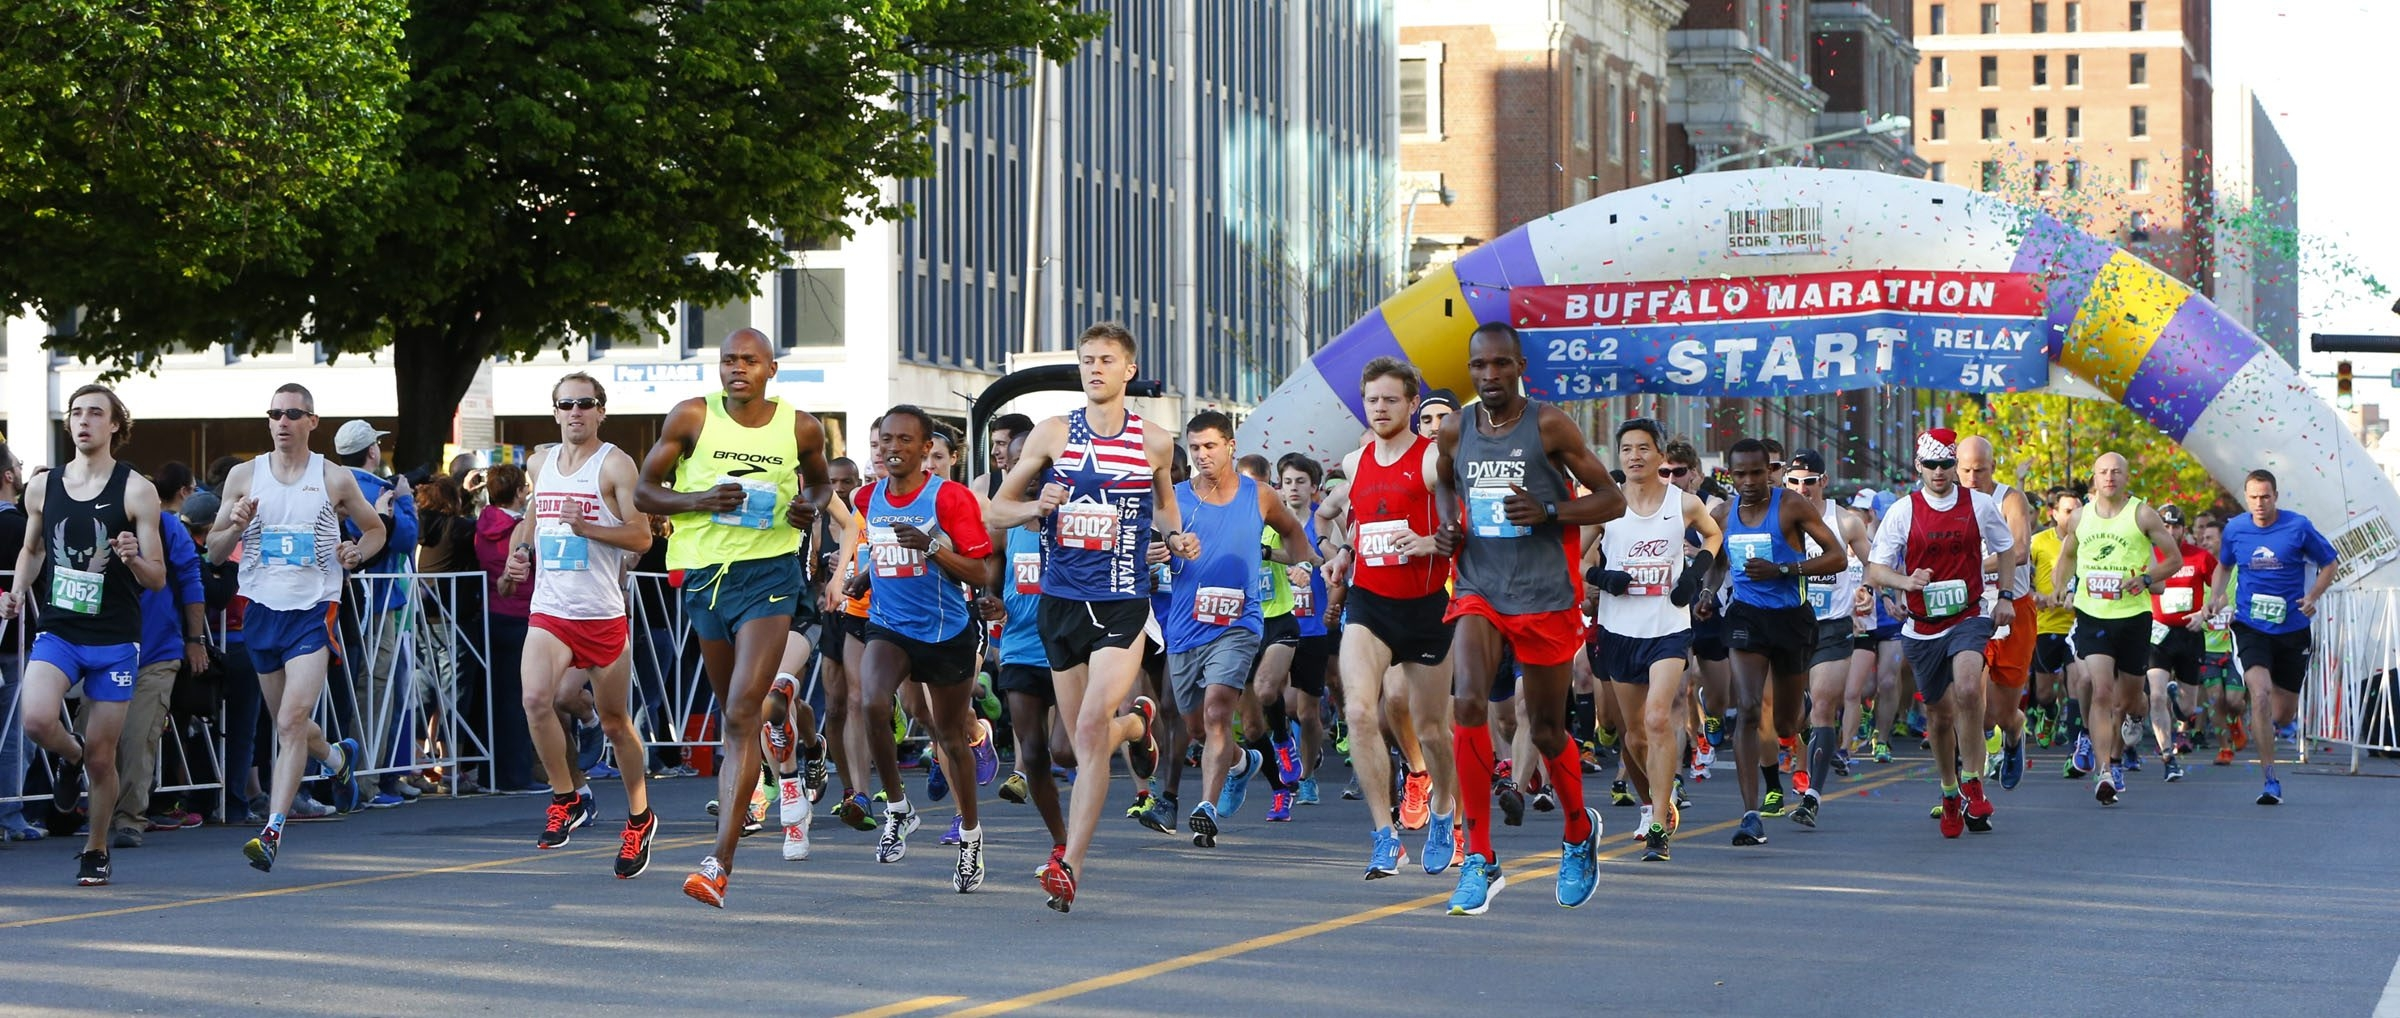 Runners participate in the 2015 Buffalo Marathon.(Harry Scull Jr./Buffalo News)